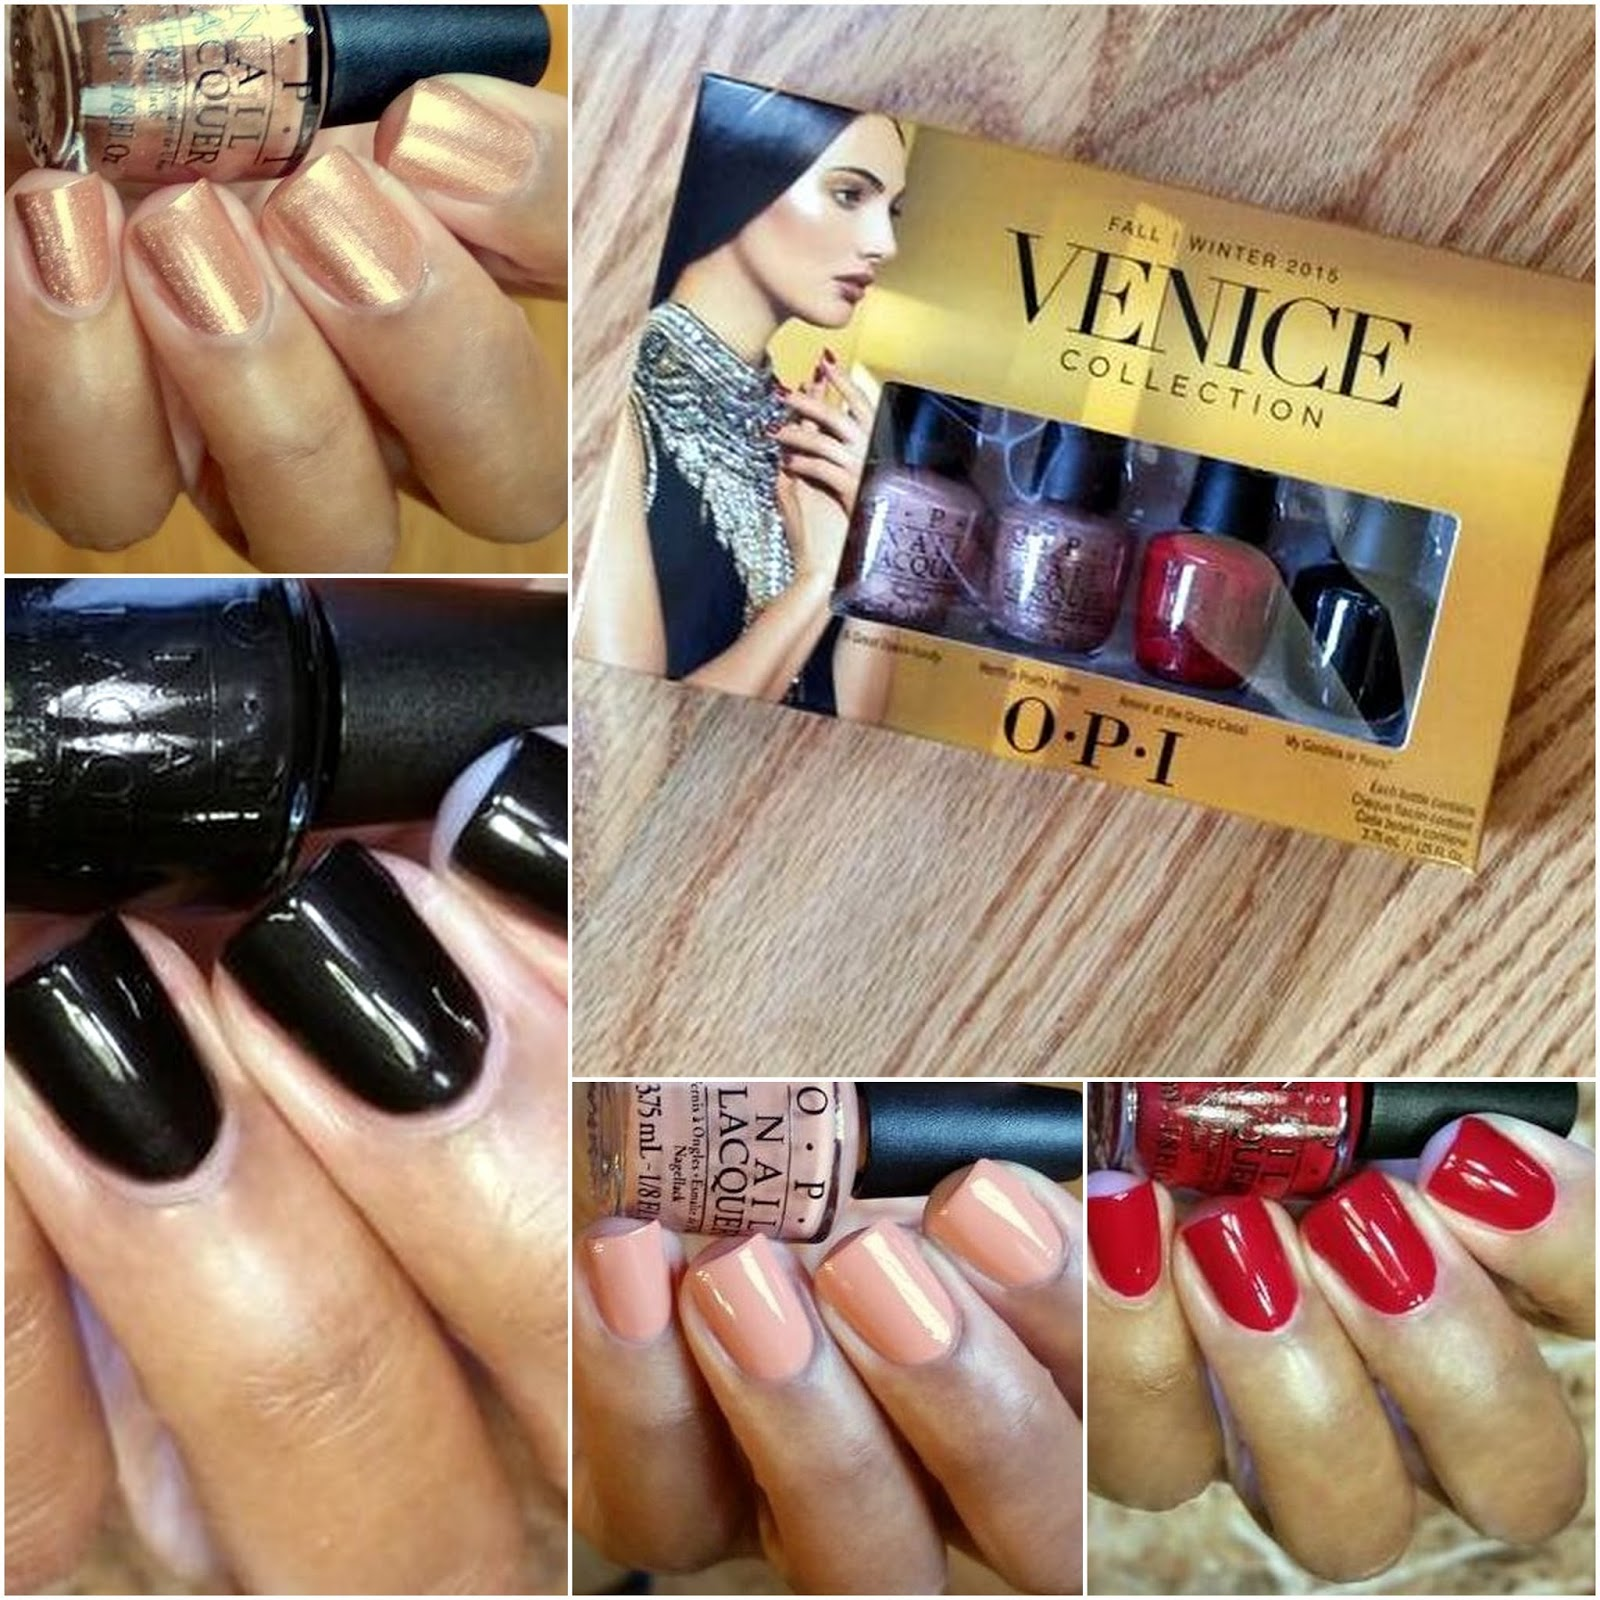 Enamel Girl: OPI Venice Fall 2015 Collection - Mini Set Swatches